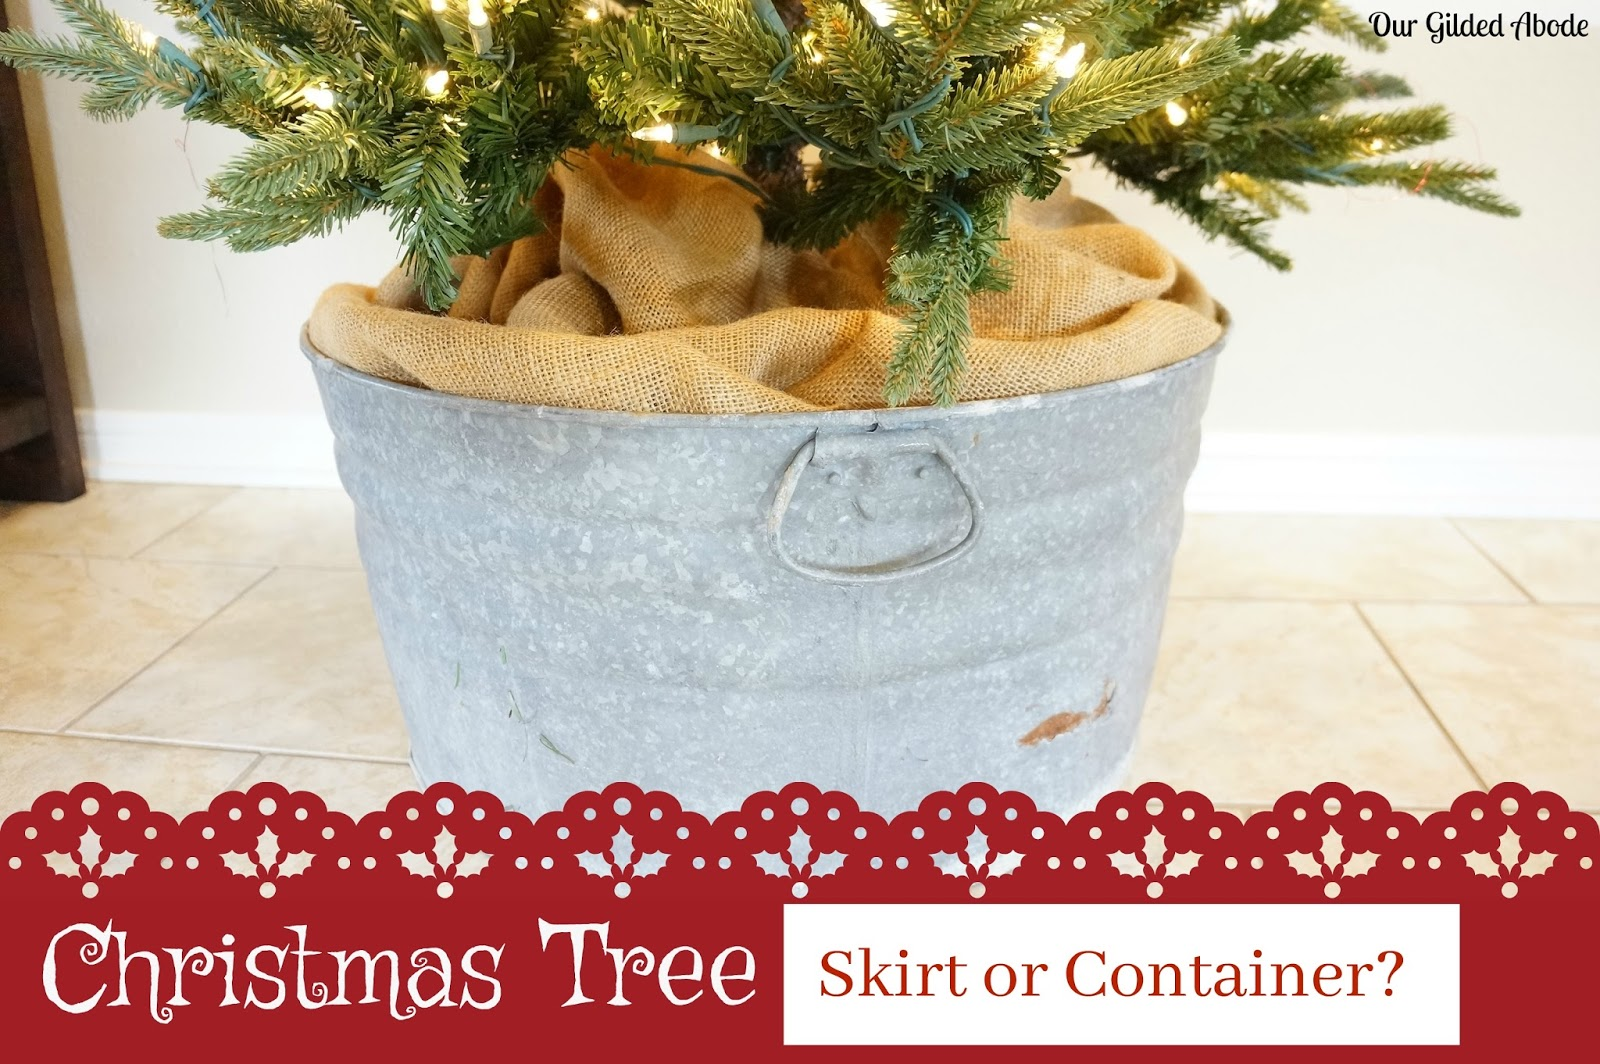 Christmas Tree Skirt or Container